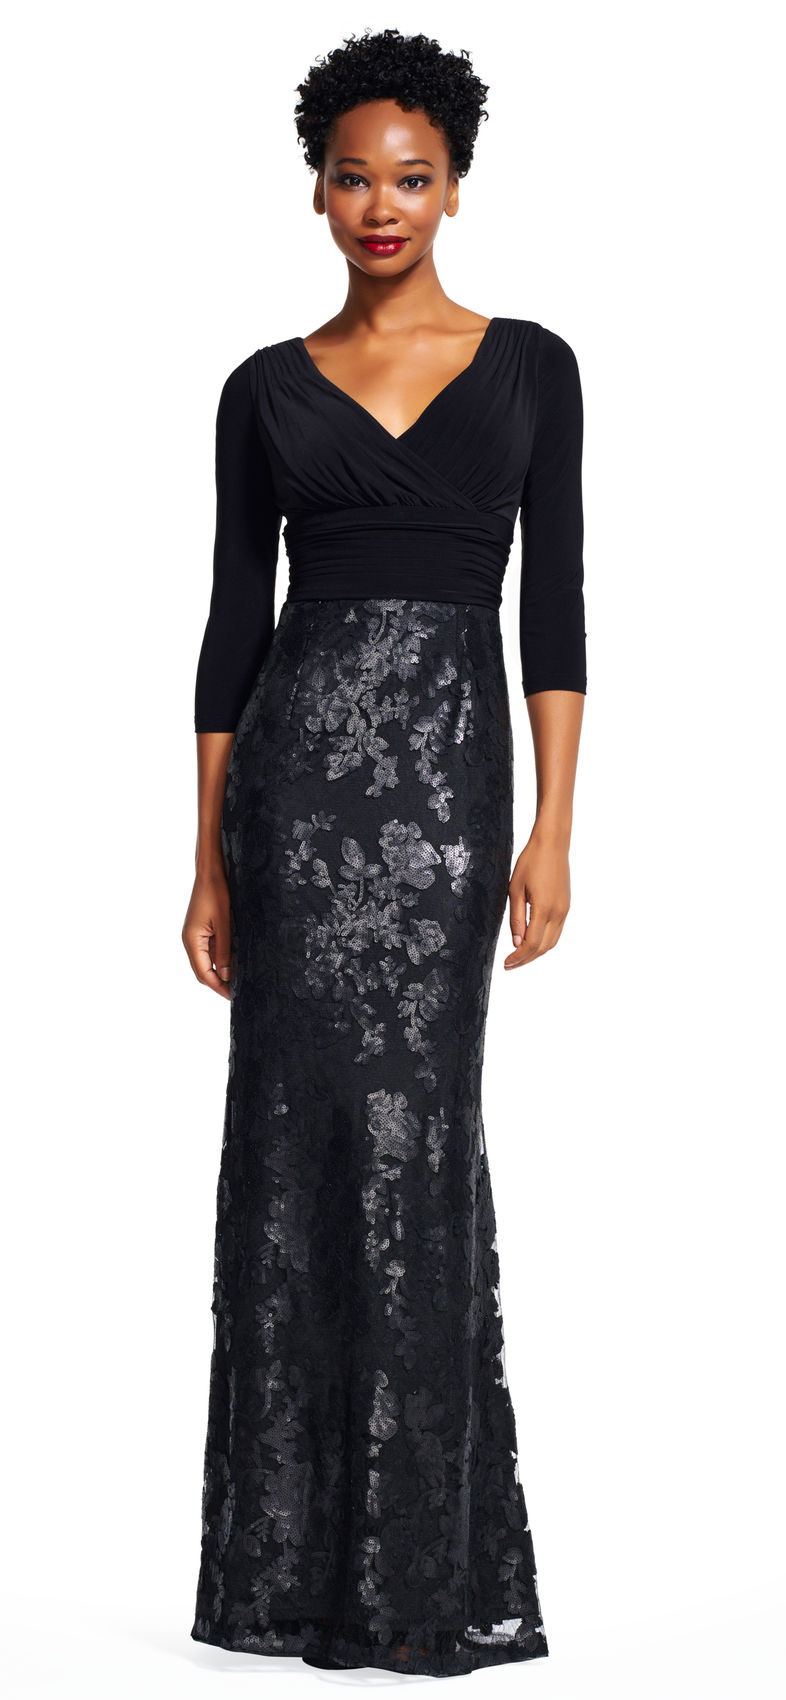 Adrianna Papell Sequin Floral Lace Dress with Draped Jersey Bodice ...